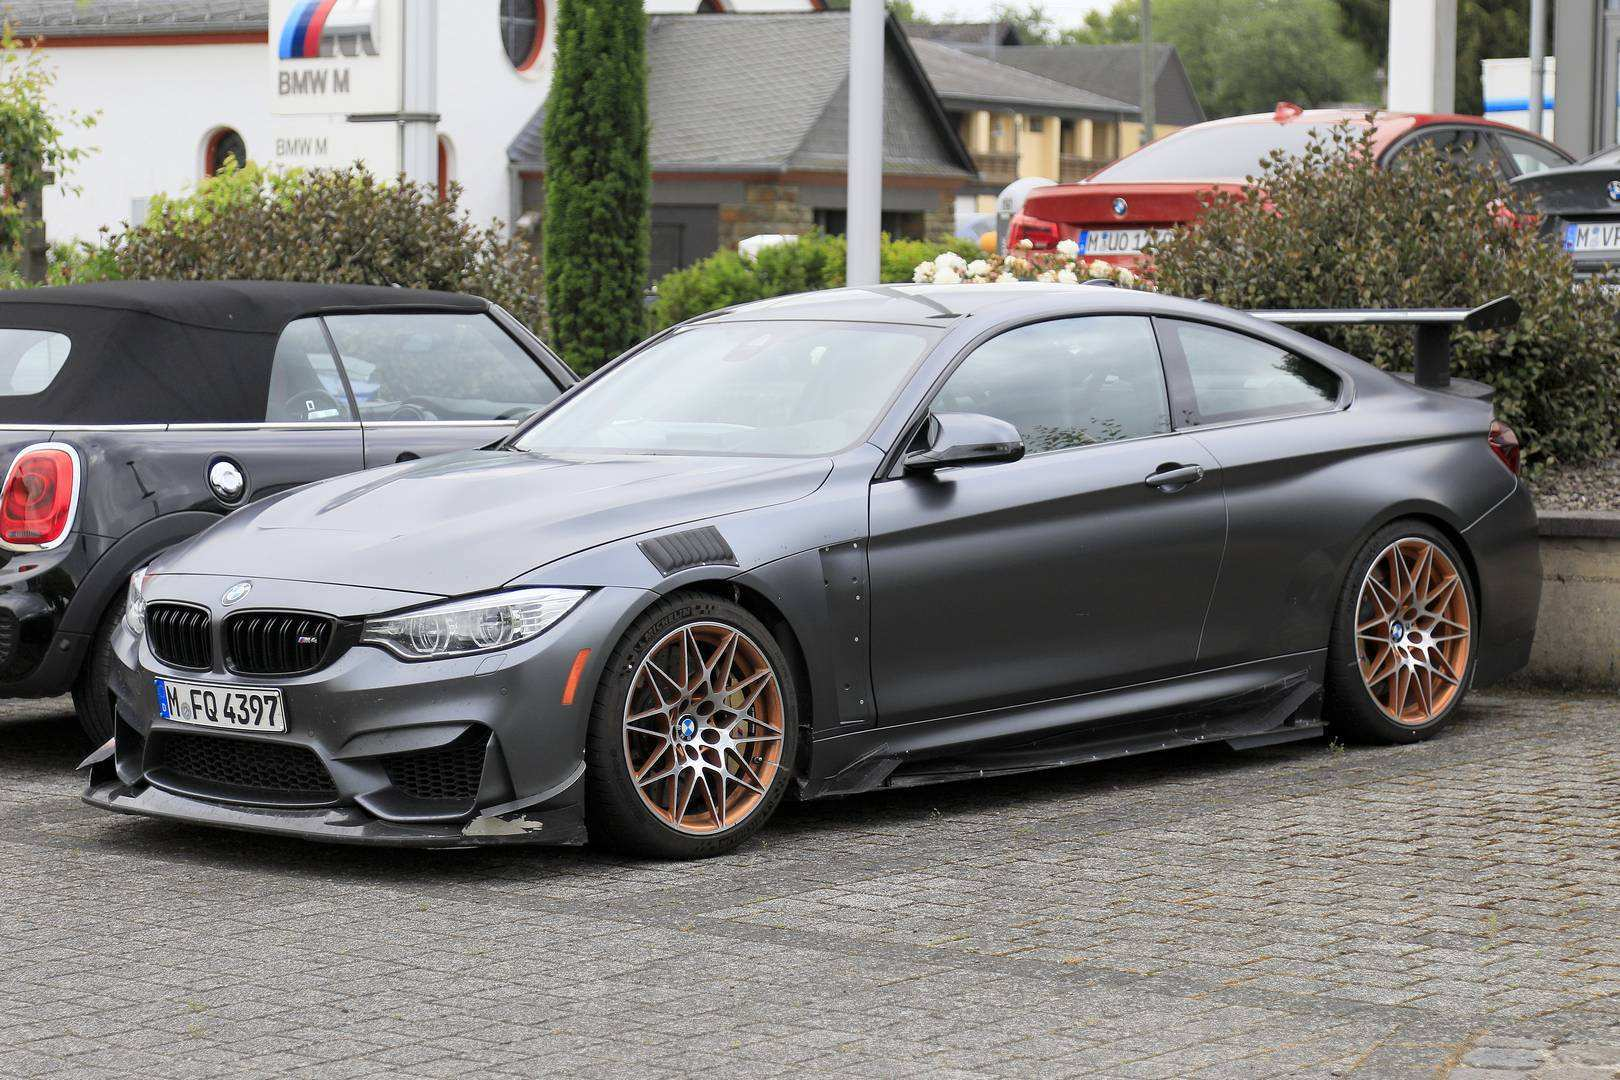 37 Best 2020 BMW M4 Gts Price Design And Review